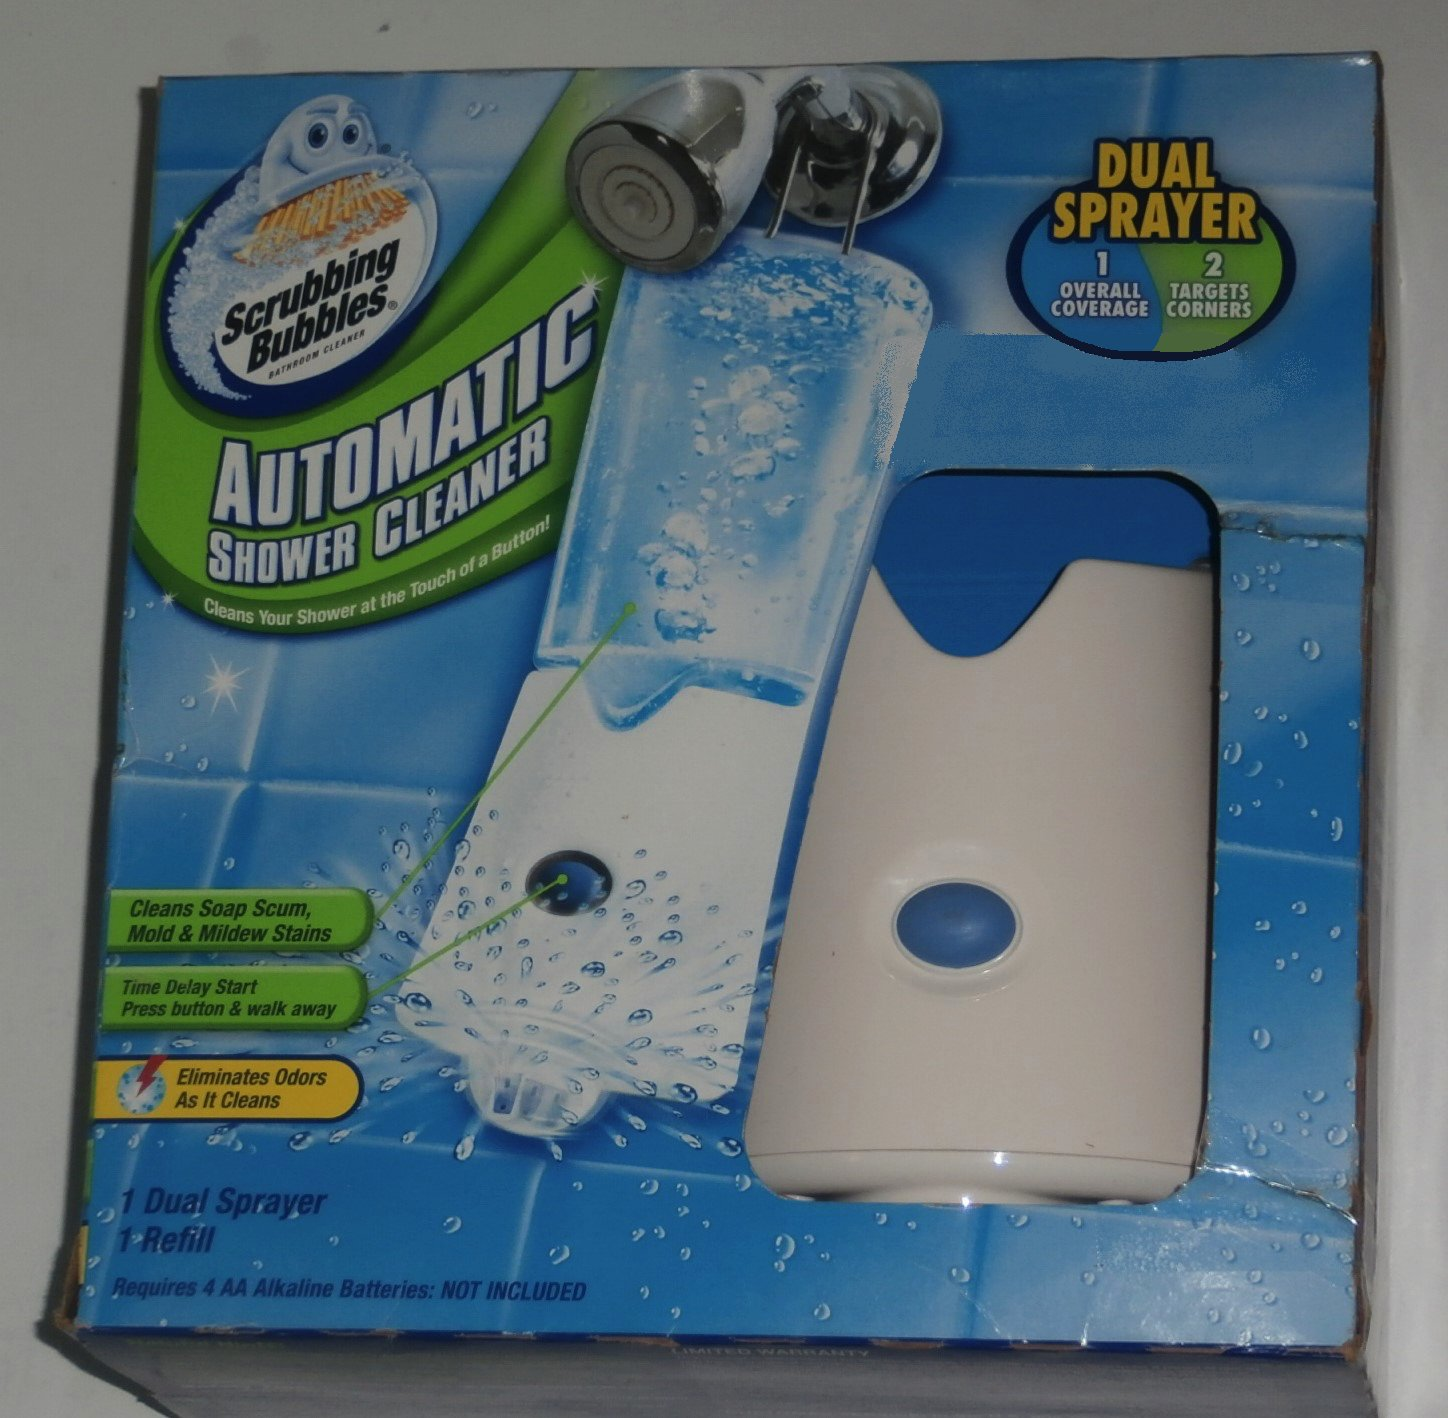 Scrubbing Bubbles Dual Sprayer Automatic Shower Cleaner with 1 Refill by Scrubbing Bubbles (Image #2)